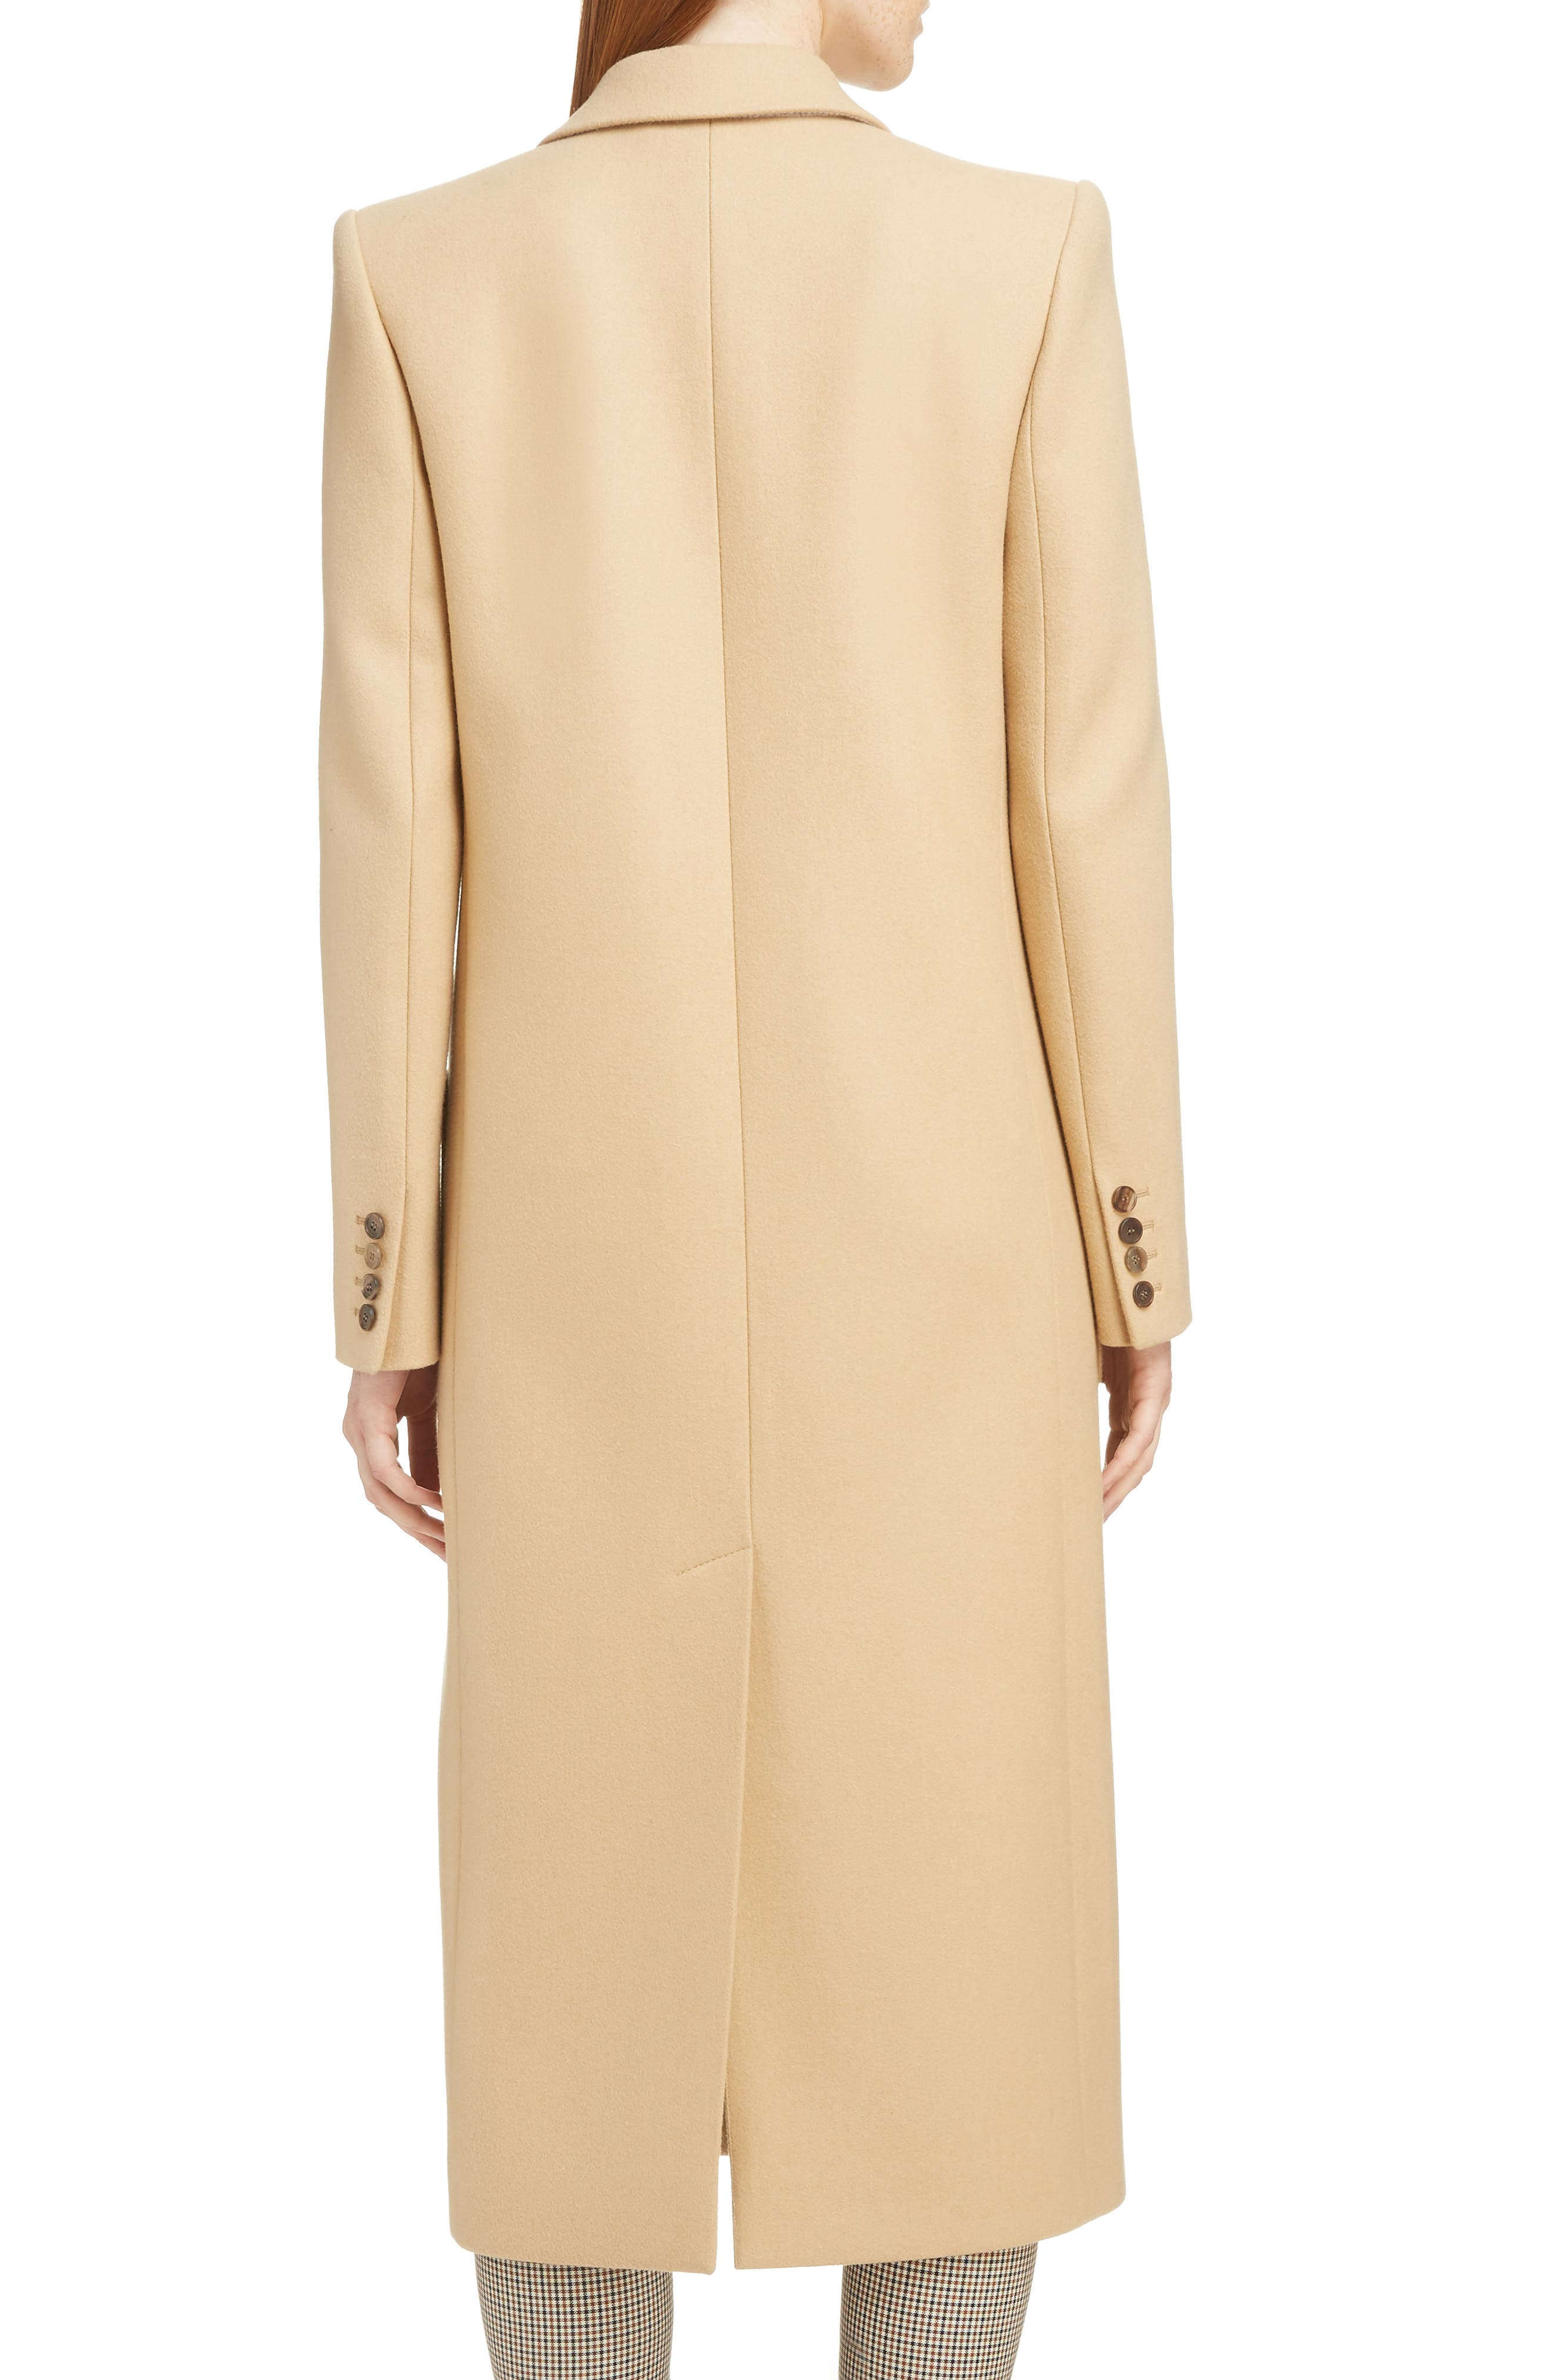 GIVENCHY,                             Double Breasted Wool Coat,                             Alternate thumbnail 2, color,                             250-BEIGE